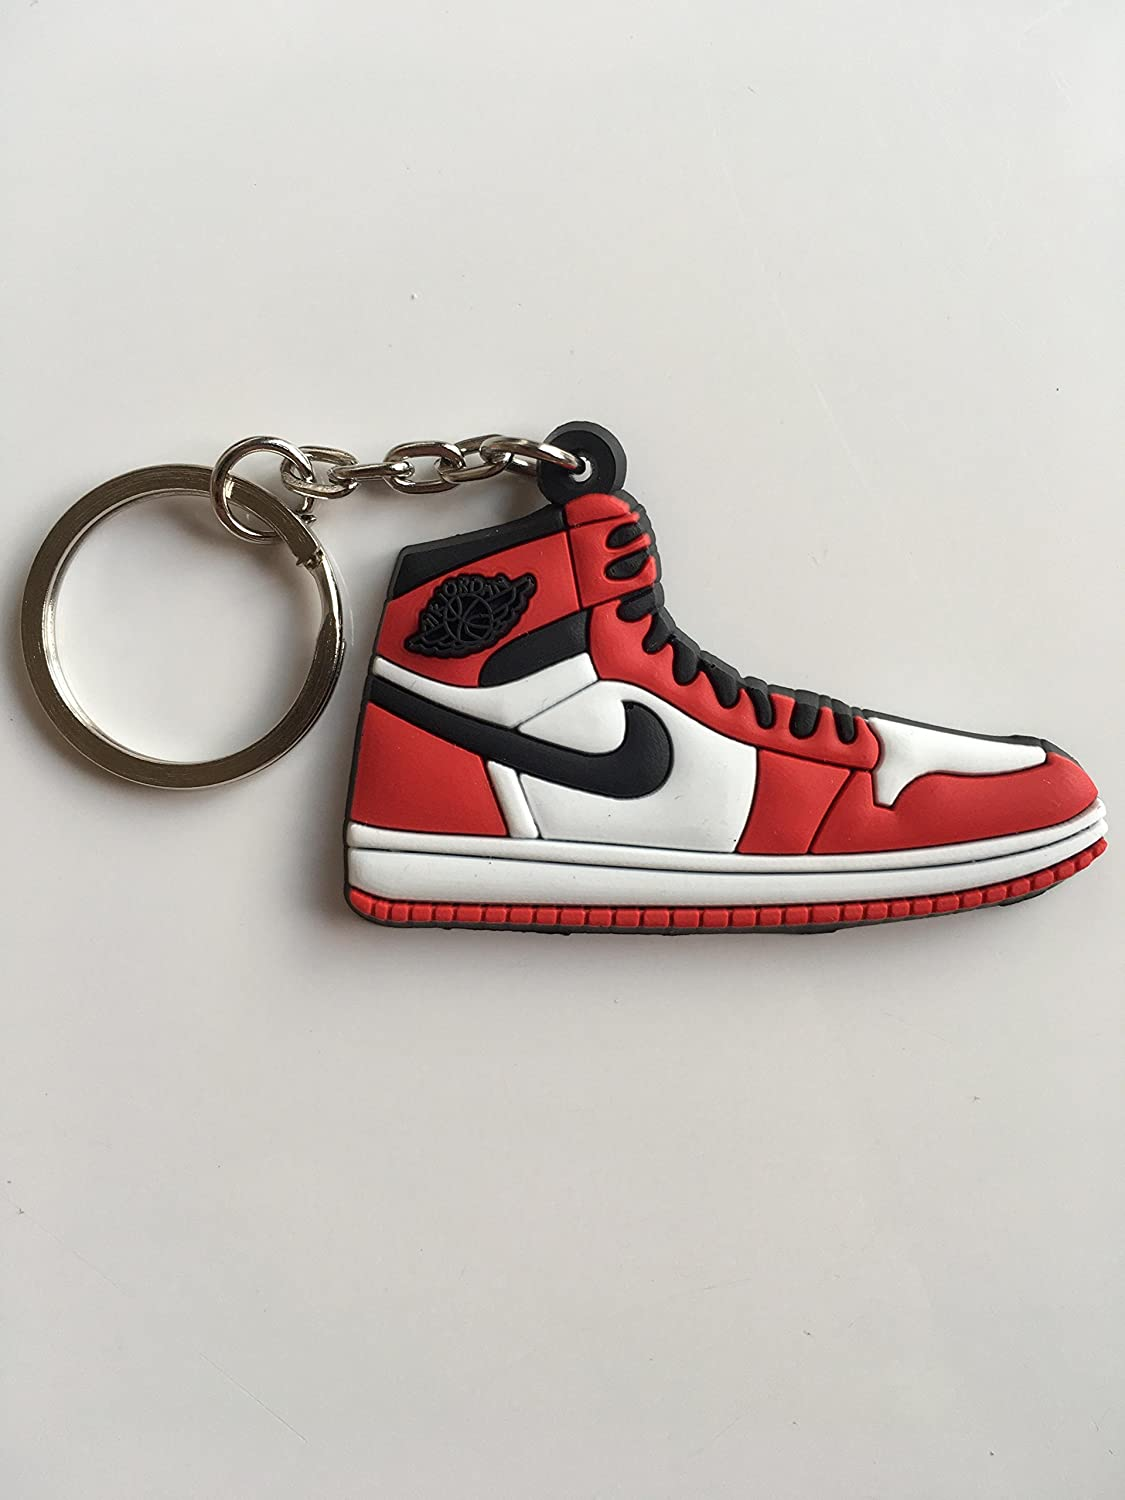 Amazon.com: Jordan Retro 1 OG Chicago Sneaker llavero ...